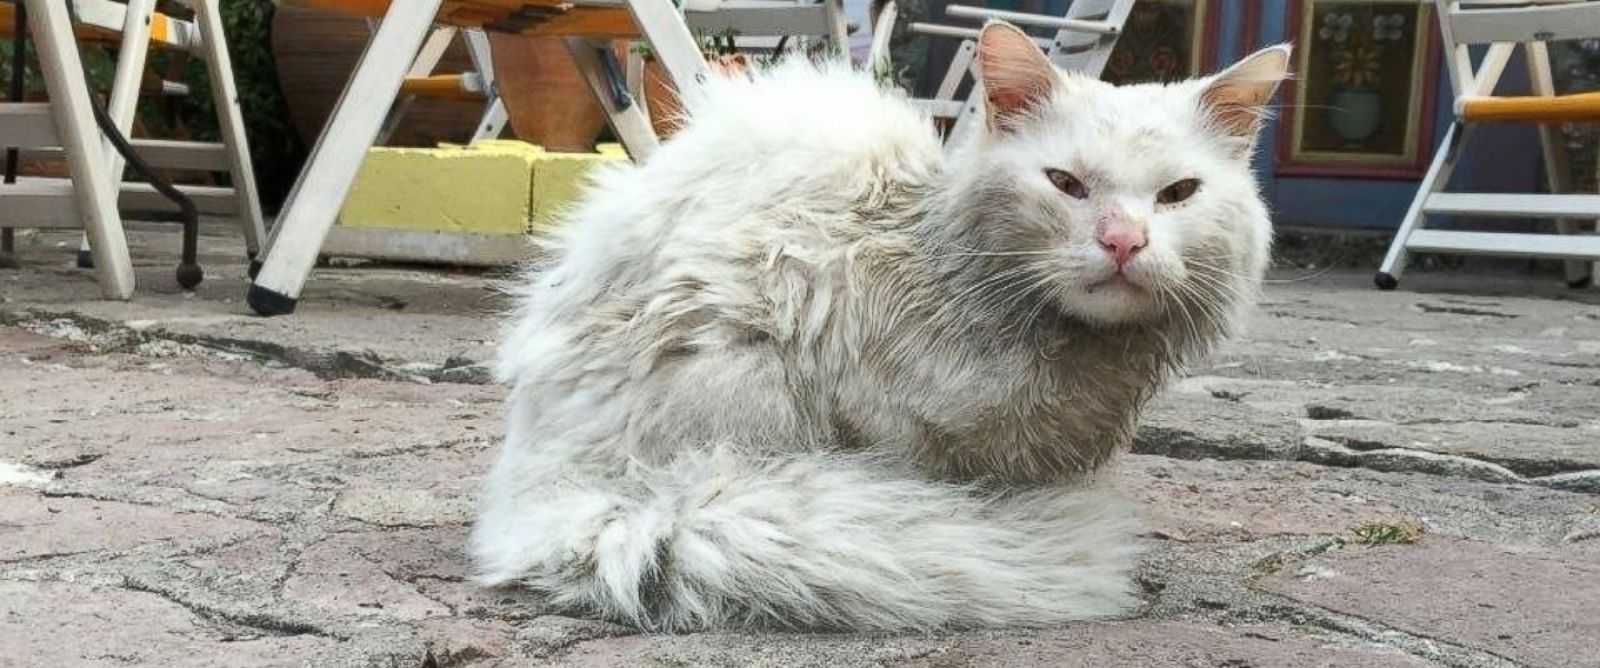 PHOTO: Dias the cat is seen in the streets of Lesvos, Greece, after being separated from his family.